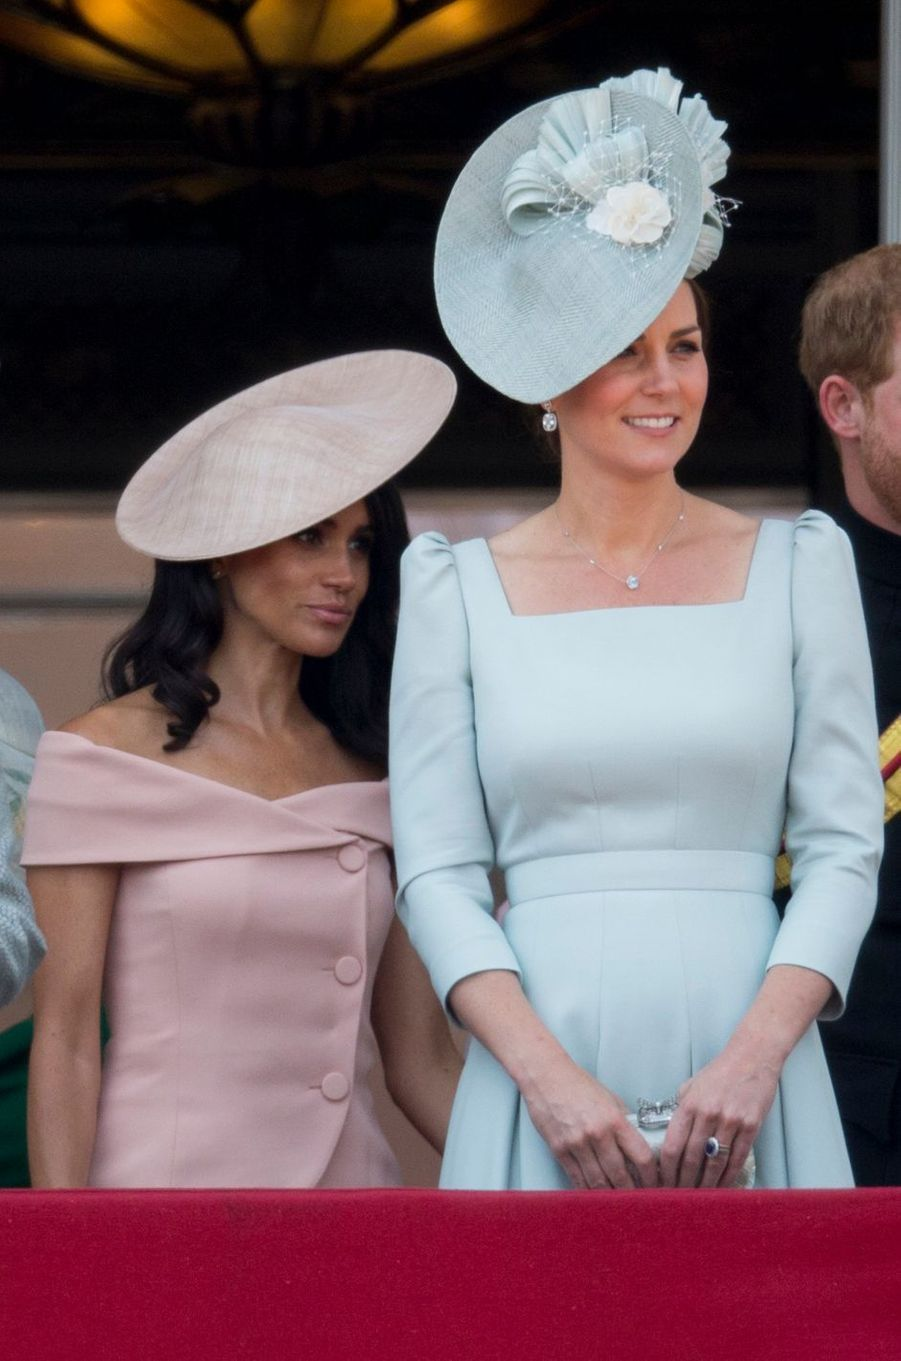 Les duchesses Meghan de Sussex et Catherine de Cambridge à Londres, le 9 juin 2018